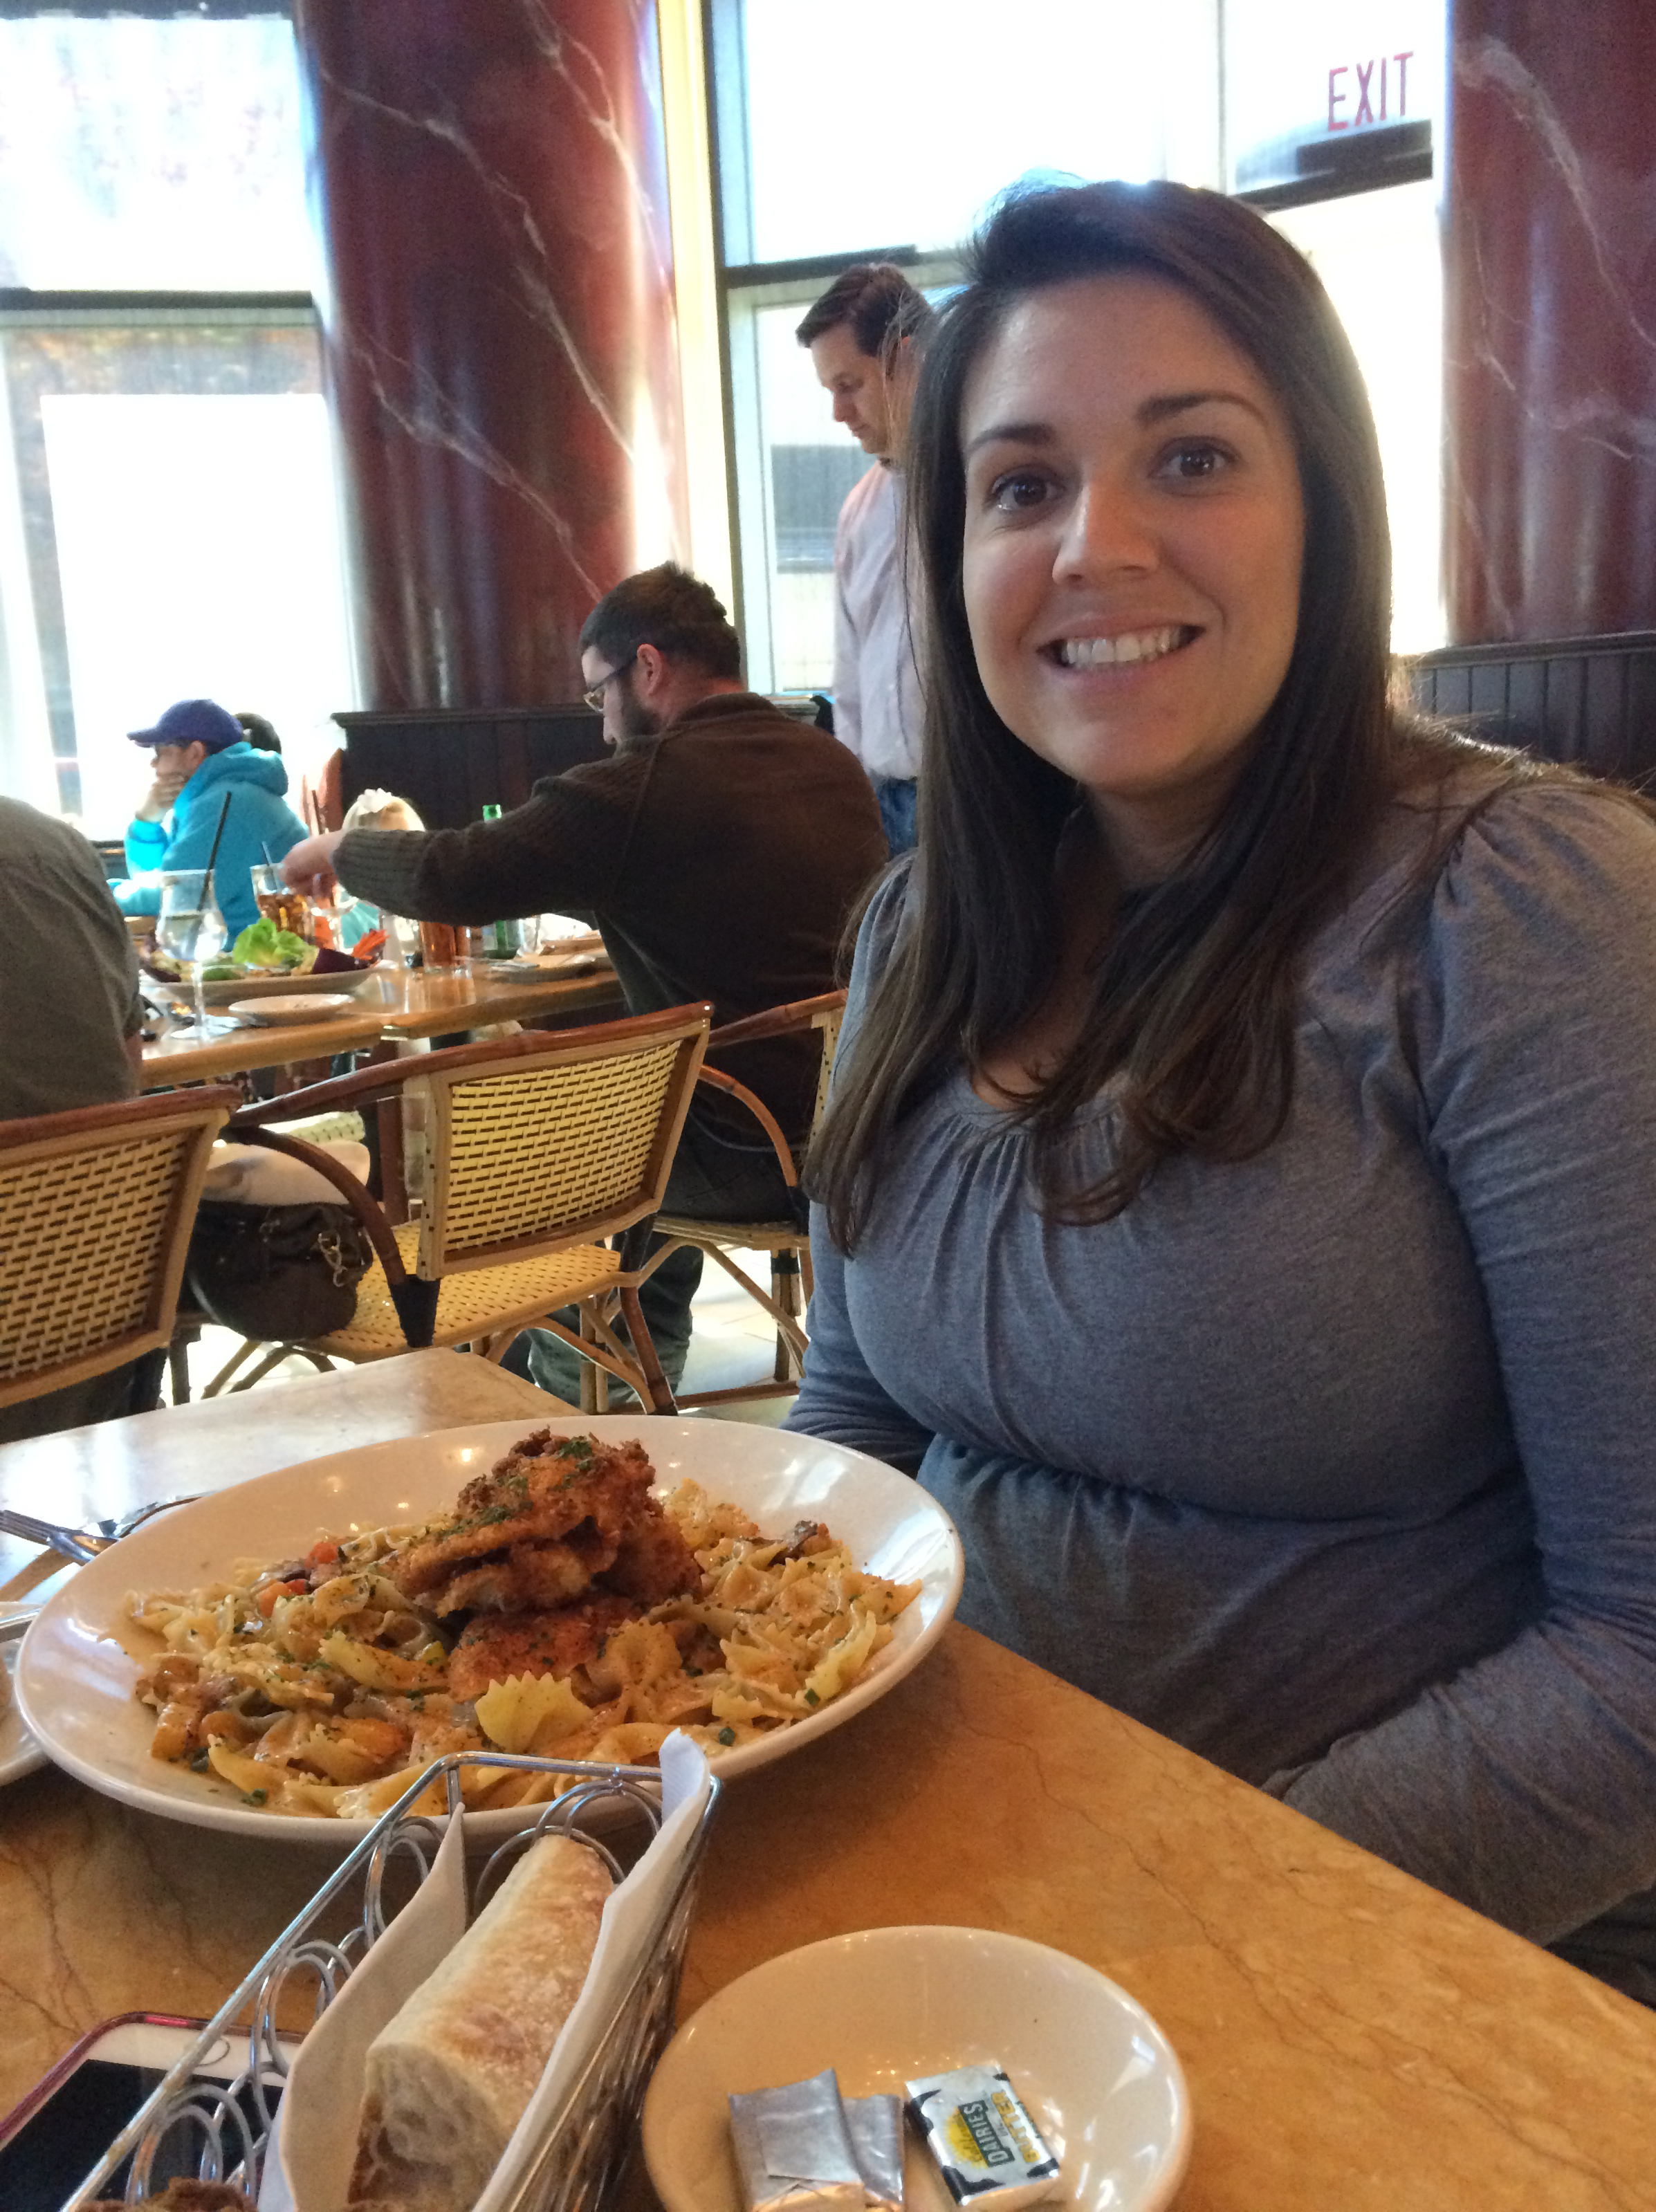 Sidney helped me discover my love of the Cheesecake Factory. This photo is of Sid at the Charlotte Cheesecake Factory yesterday. She is with her favorite Cheesecake Factory dish, the Louisiana pasta.